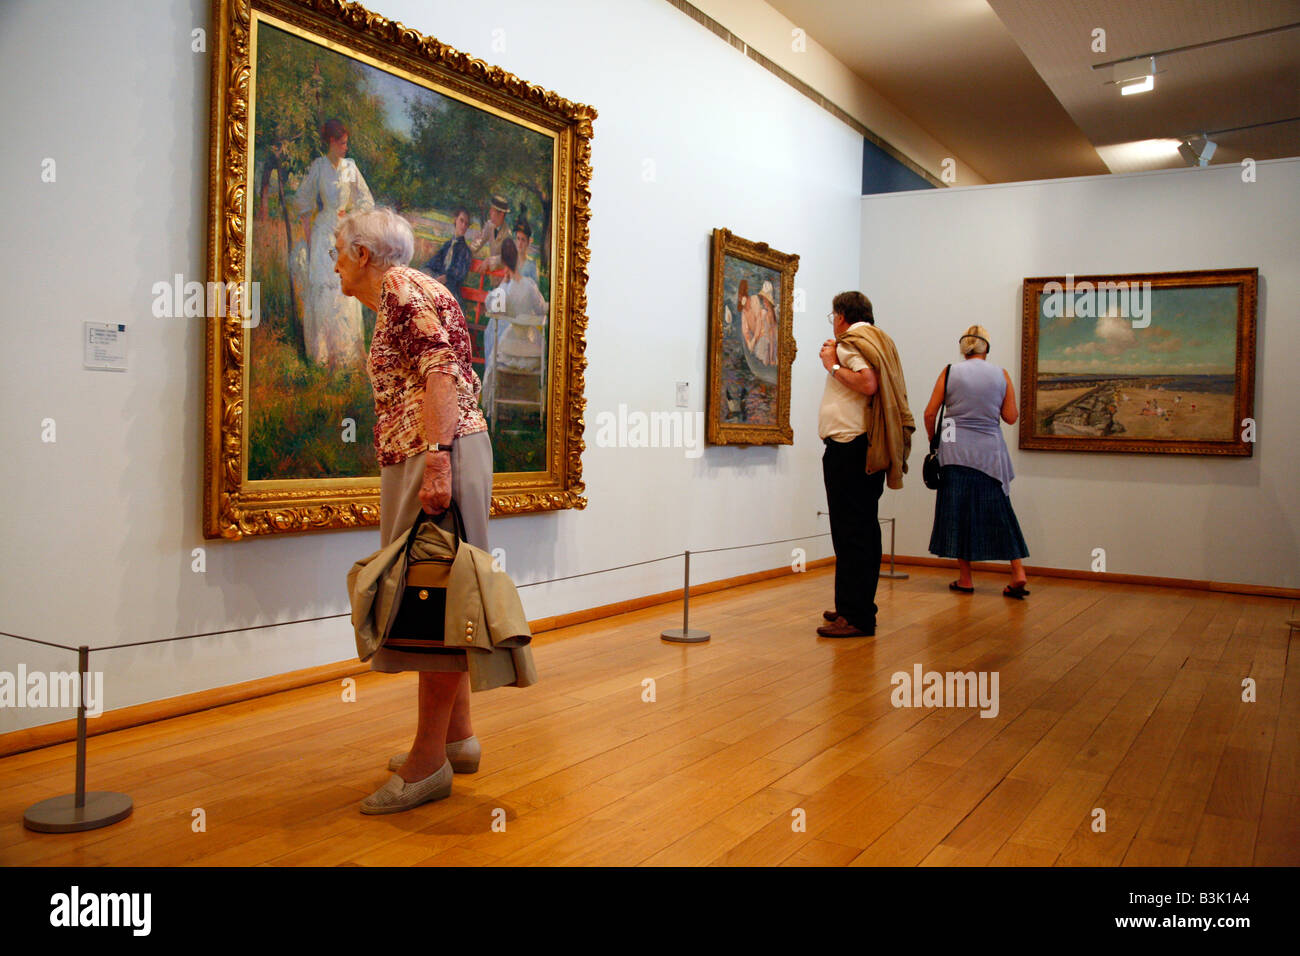 July 2008 - Musée d Art Américain in Giverny Normandy France - Stock Image